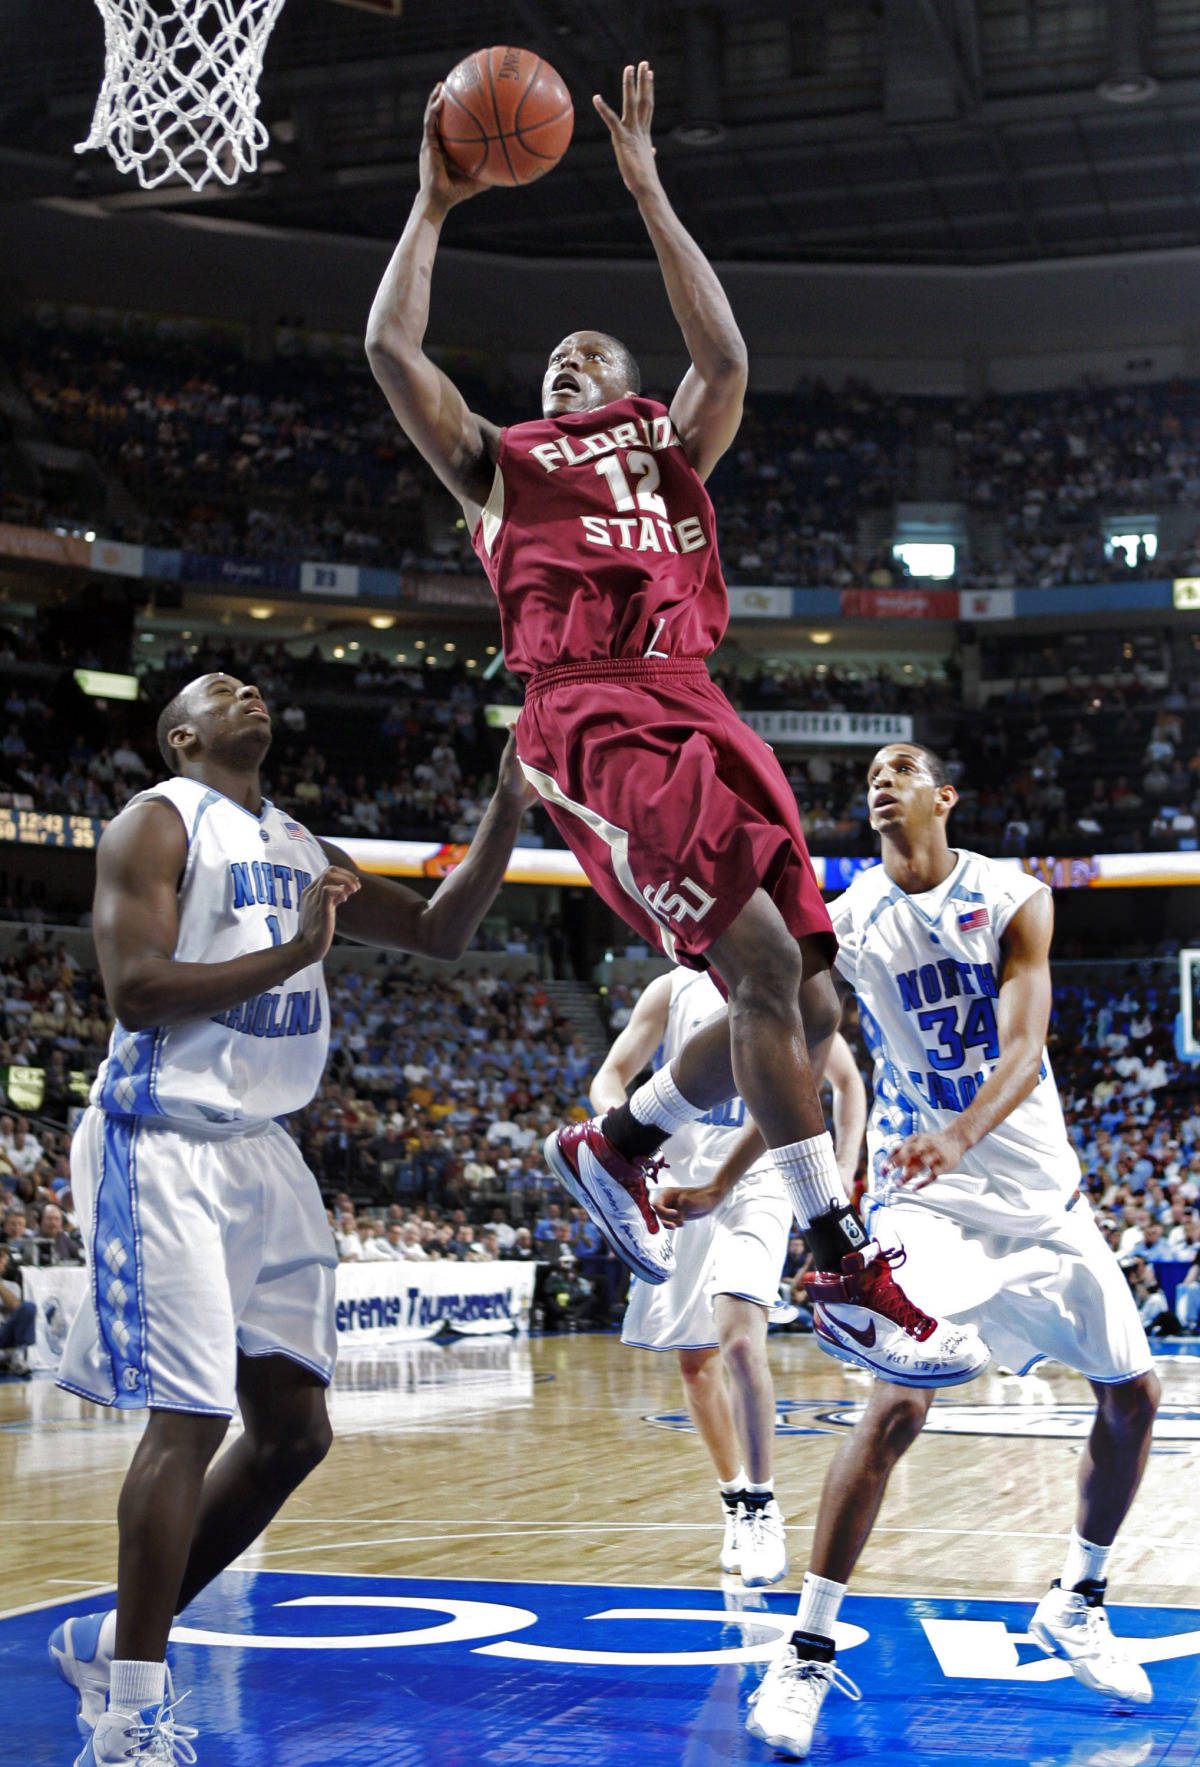 Florida State's Al Thornton (12) leaps for a shot between North Carolina's Marcus Ginyard (1) and Brandan Wright (34) during a second round game of the Men's Atlantic Coast Conference basketball tournament in Tampa, Fla., Friday, March 9, 2007. (AP Photo/David J. Phillip)